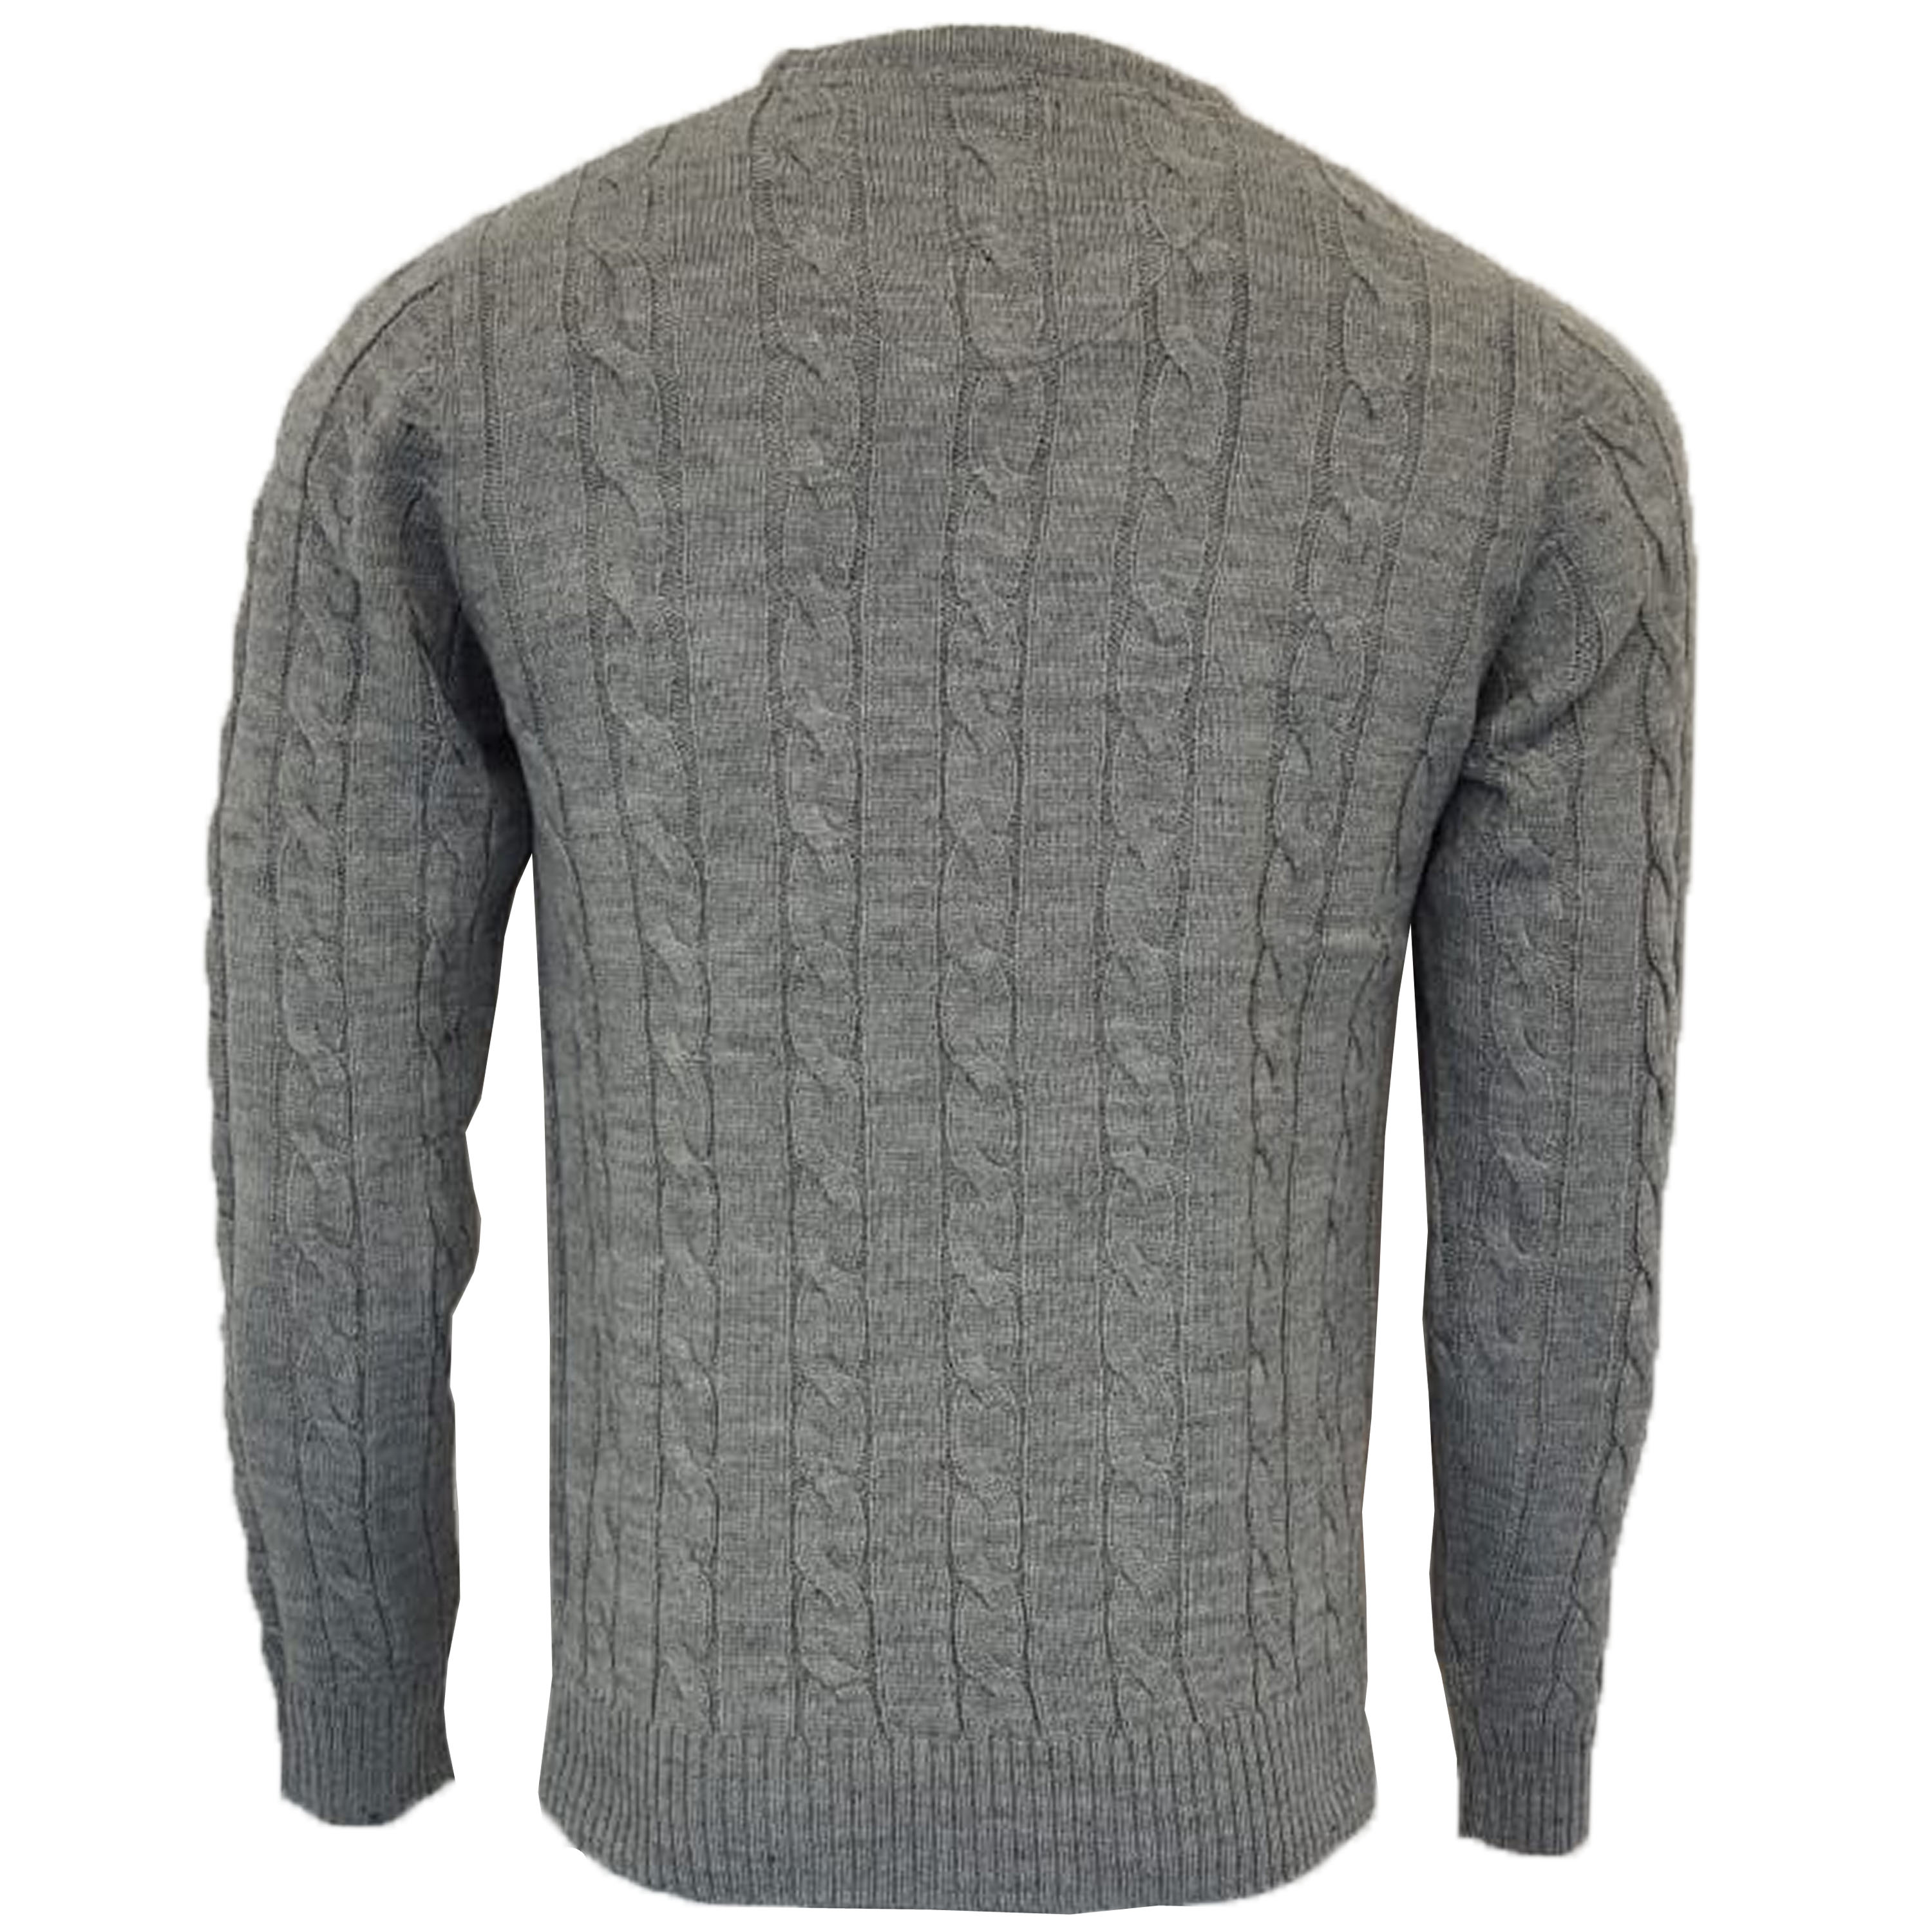 Mens-Wool-Mix-Jumper-Brave-Soul-Chunky-Knitted-Pullover-Sweater-Top-MAOISM-New thumbnail 3